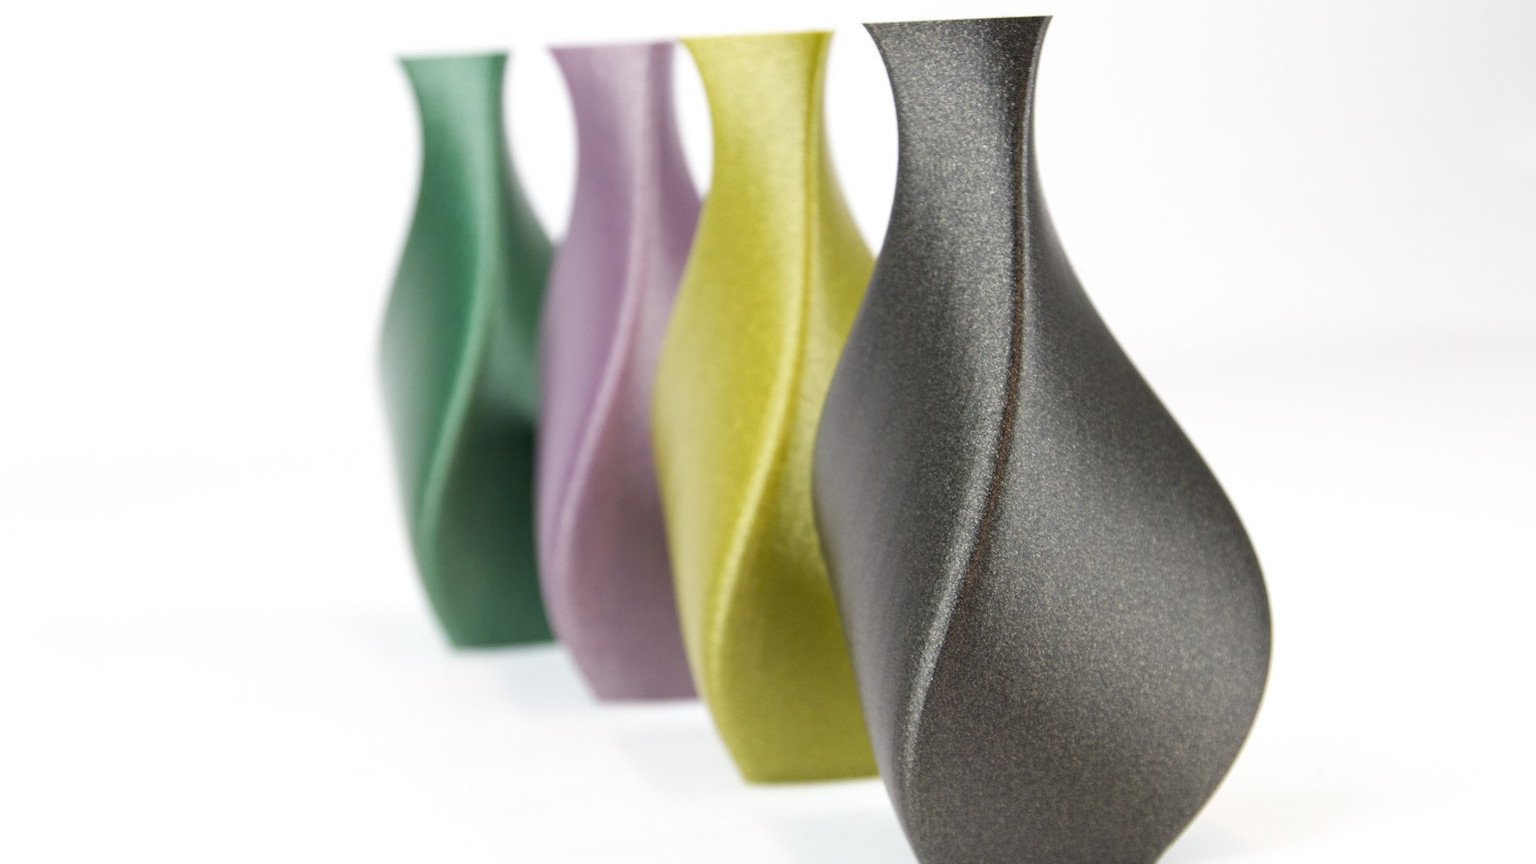 ColorFabb Presents New Range of High-Quality 3D Print Filaments | All3DP